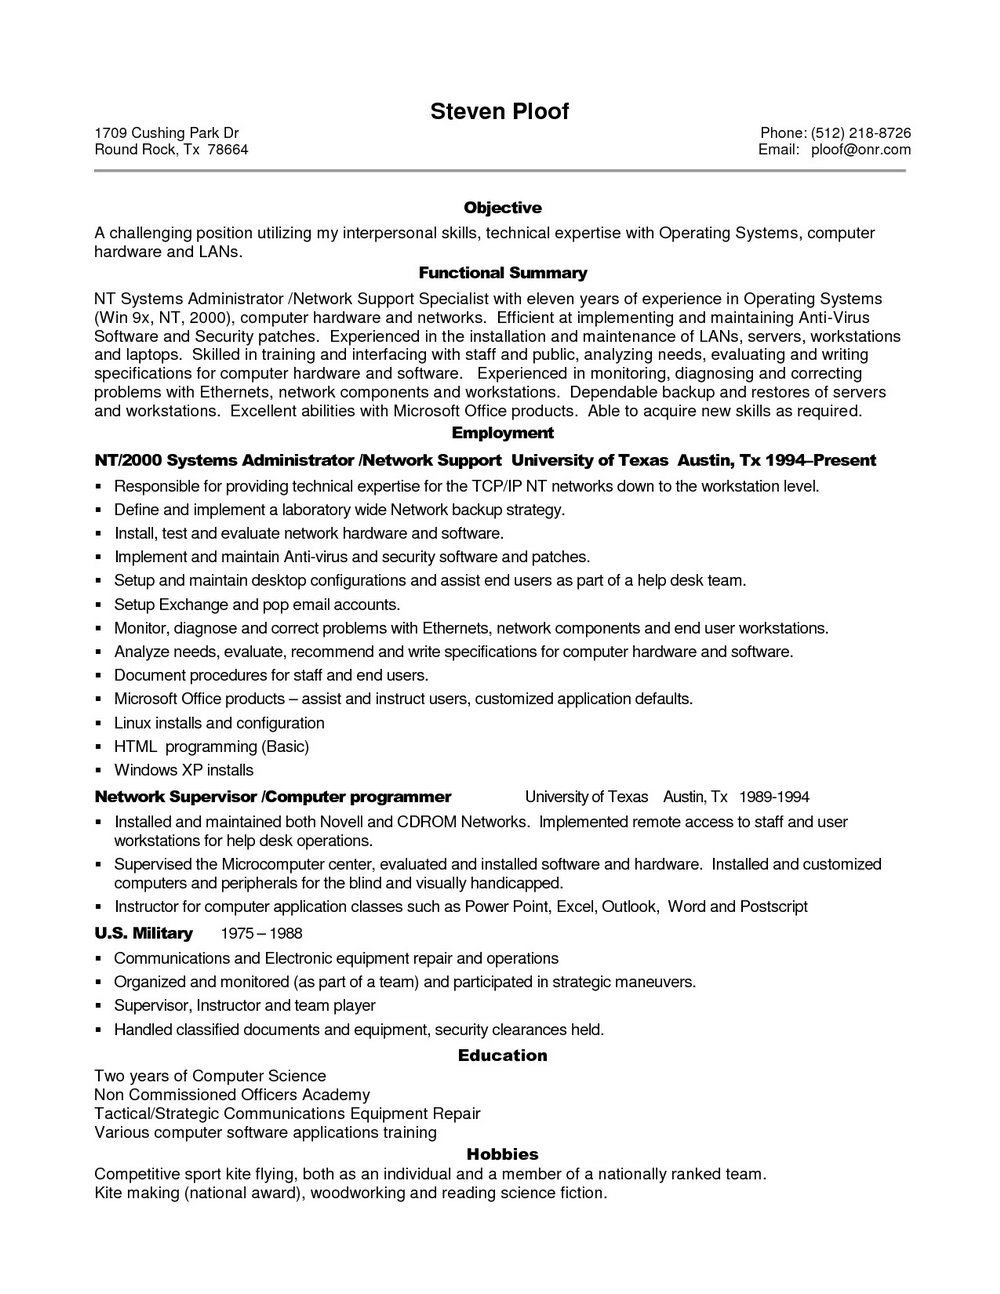 Best Resume Templates For Experienced Professionals